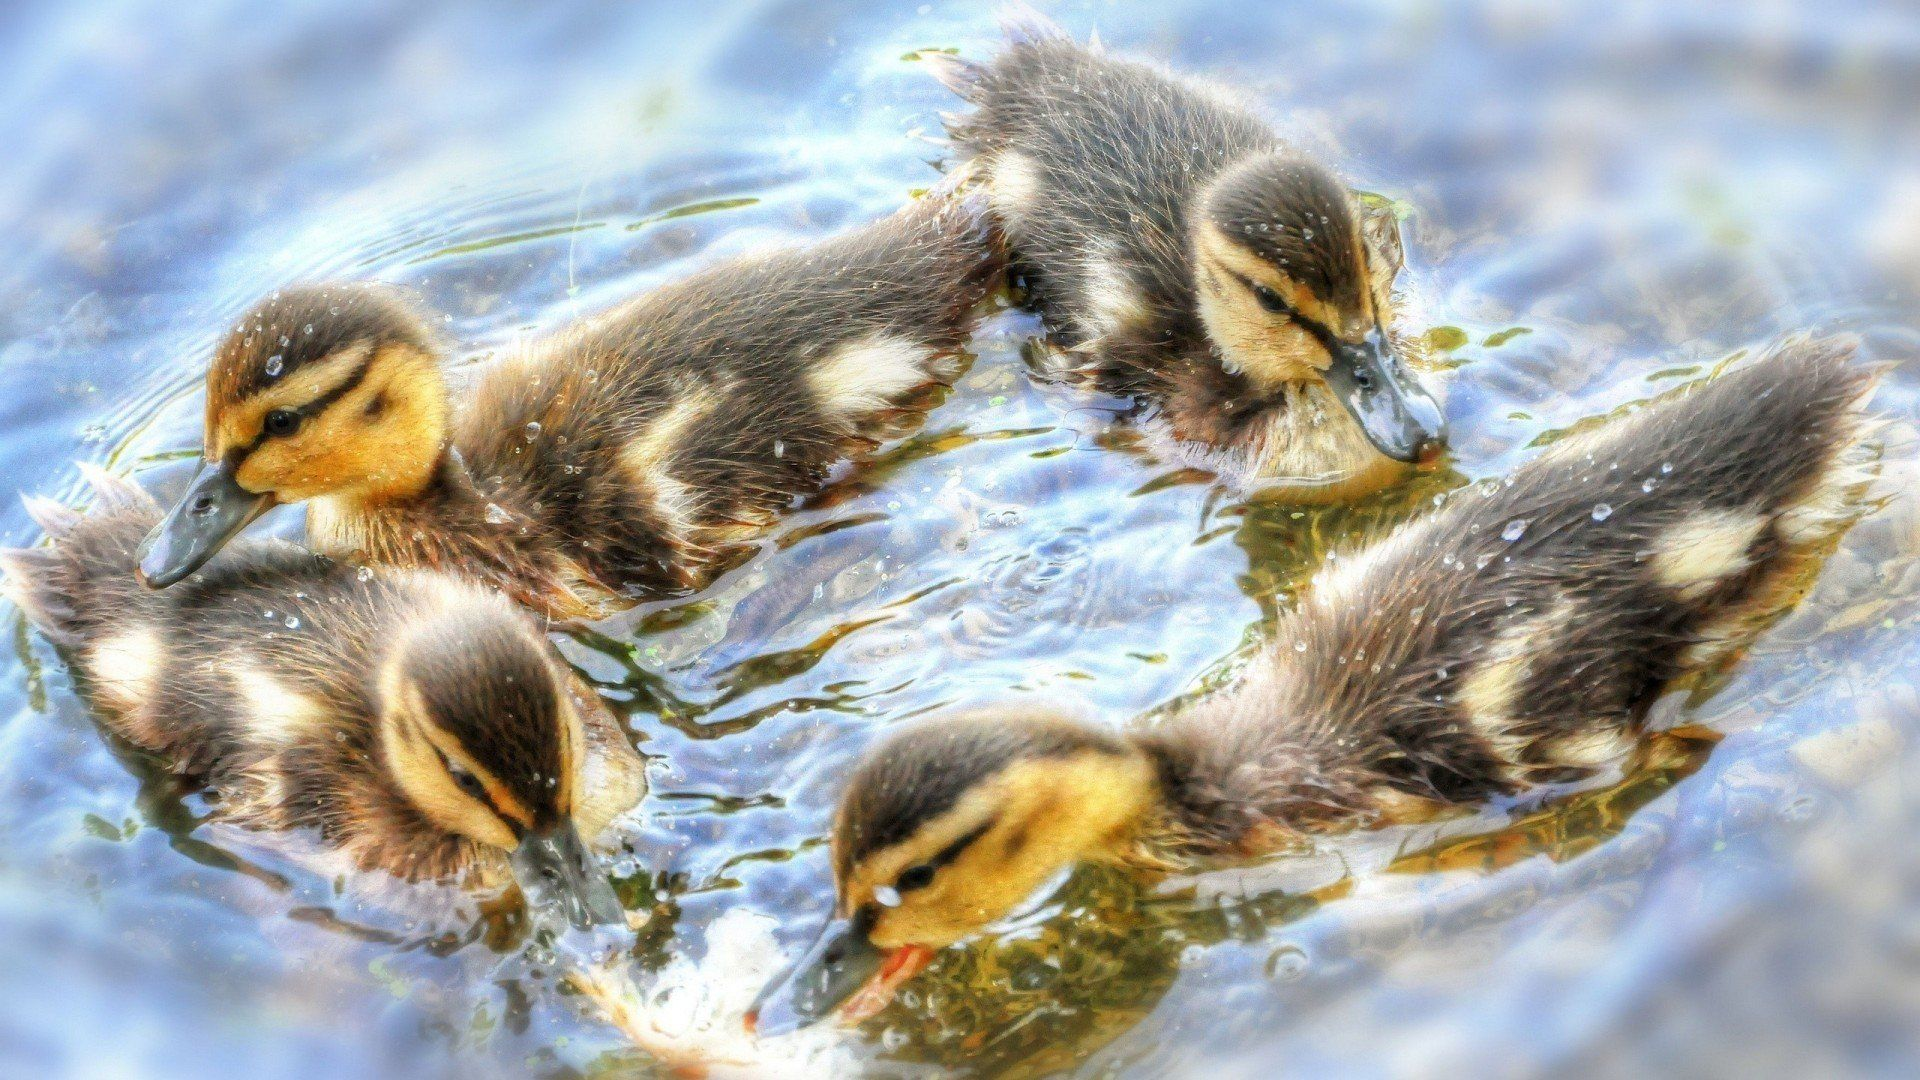 Animals Baby Water Ducks Birds Ducklings - WallDevil